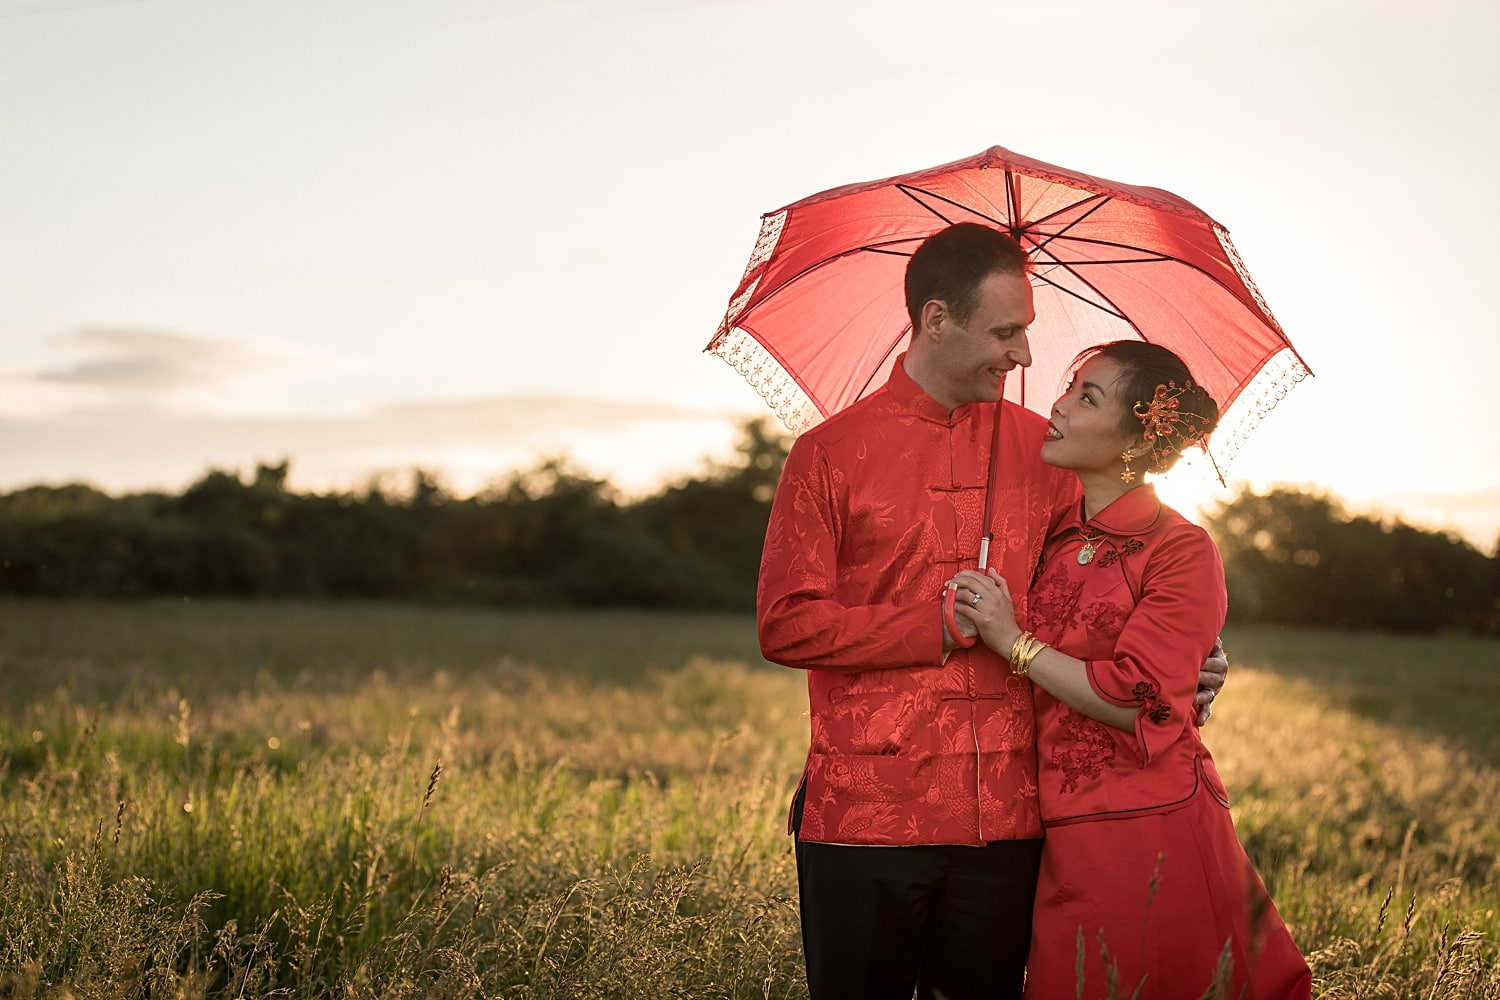 Sunset with bride and groom in traditional Chinese dress at Milling Barn